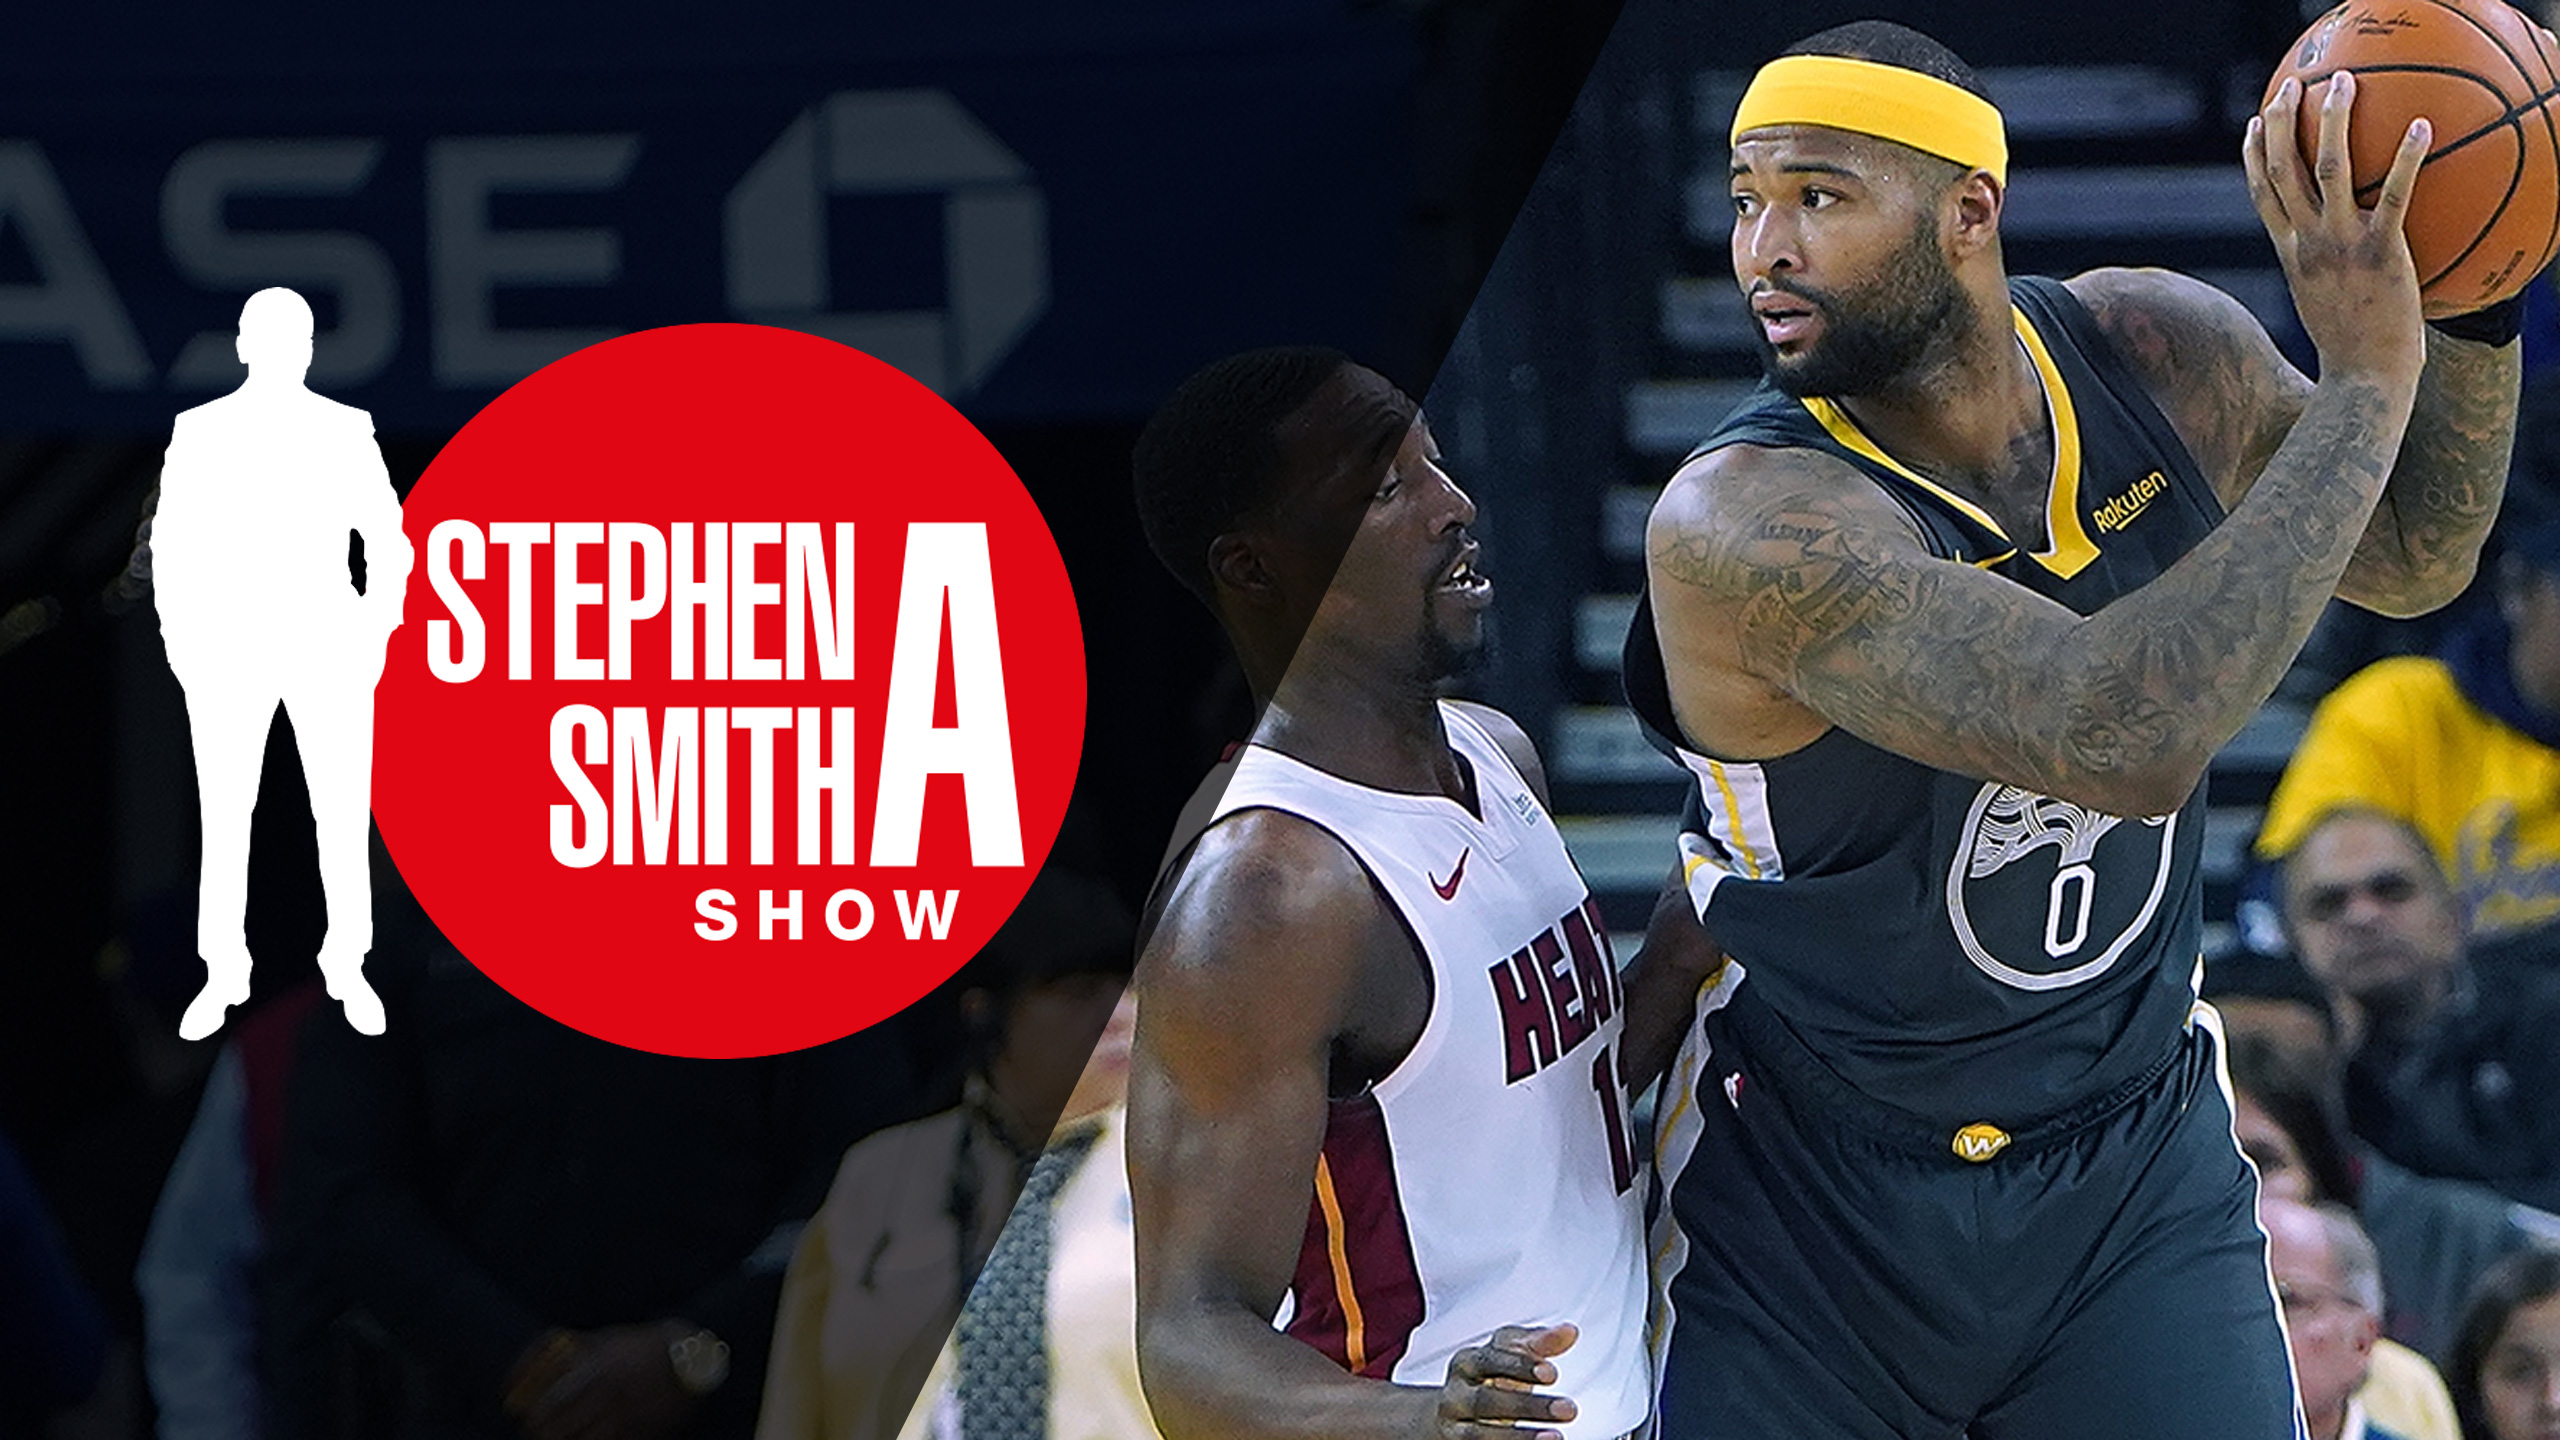 Fri, 2/22 - The Stephen A. Smith Show Presented by Progressive